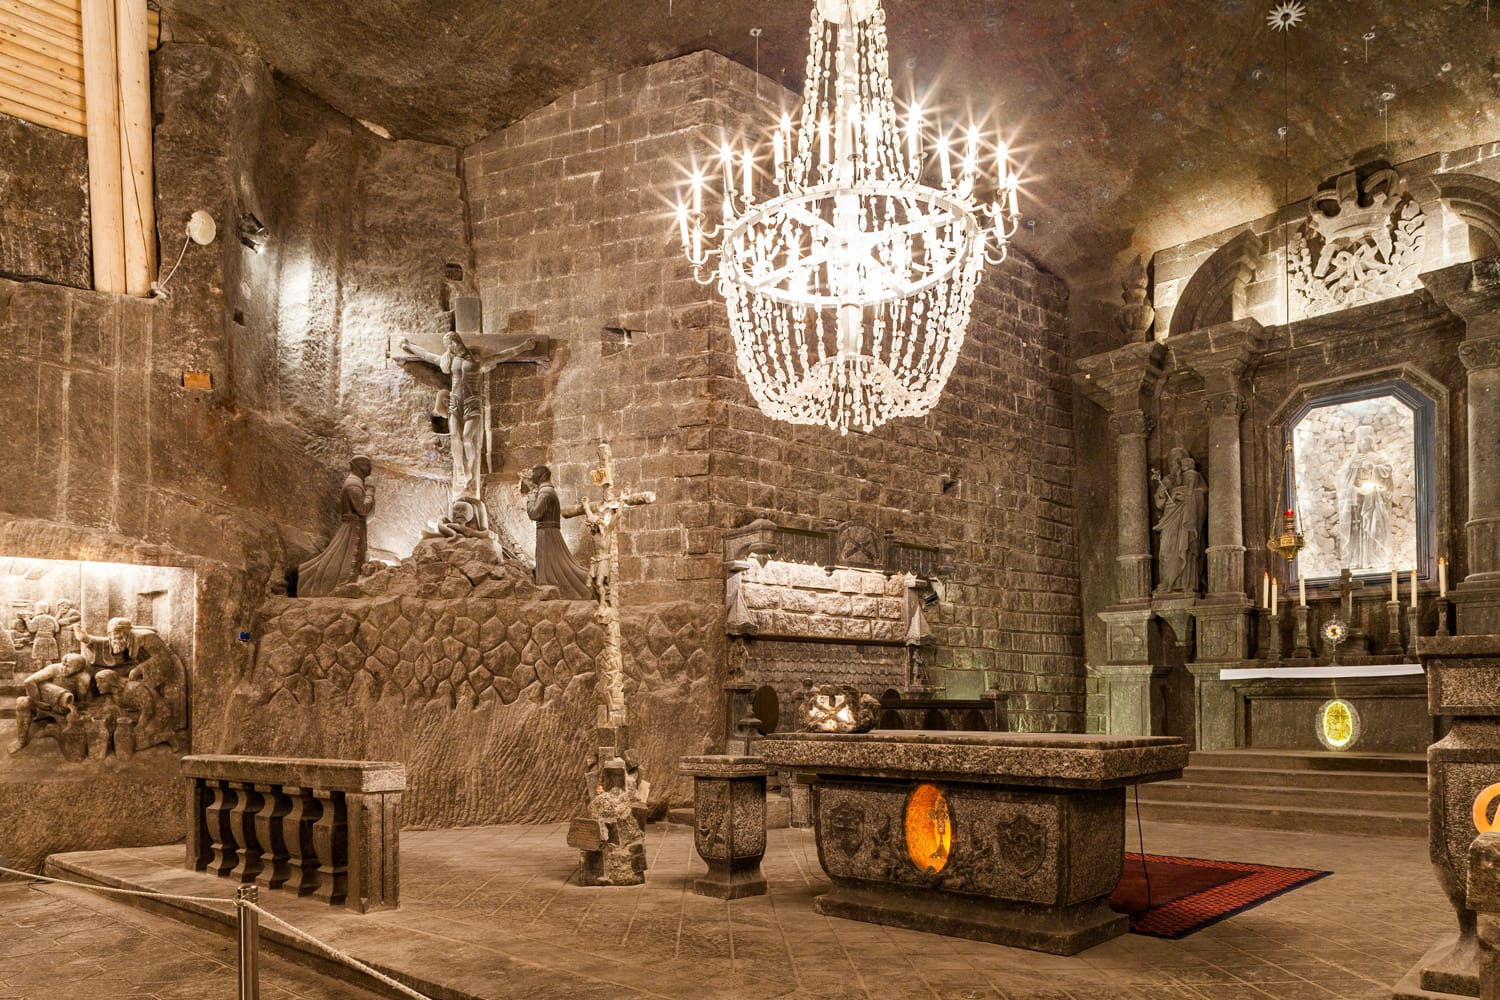 The Chapel of St. Kinga is the most famous chamber in underground Wieliczka salt museum